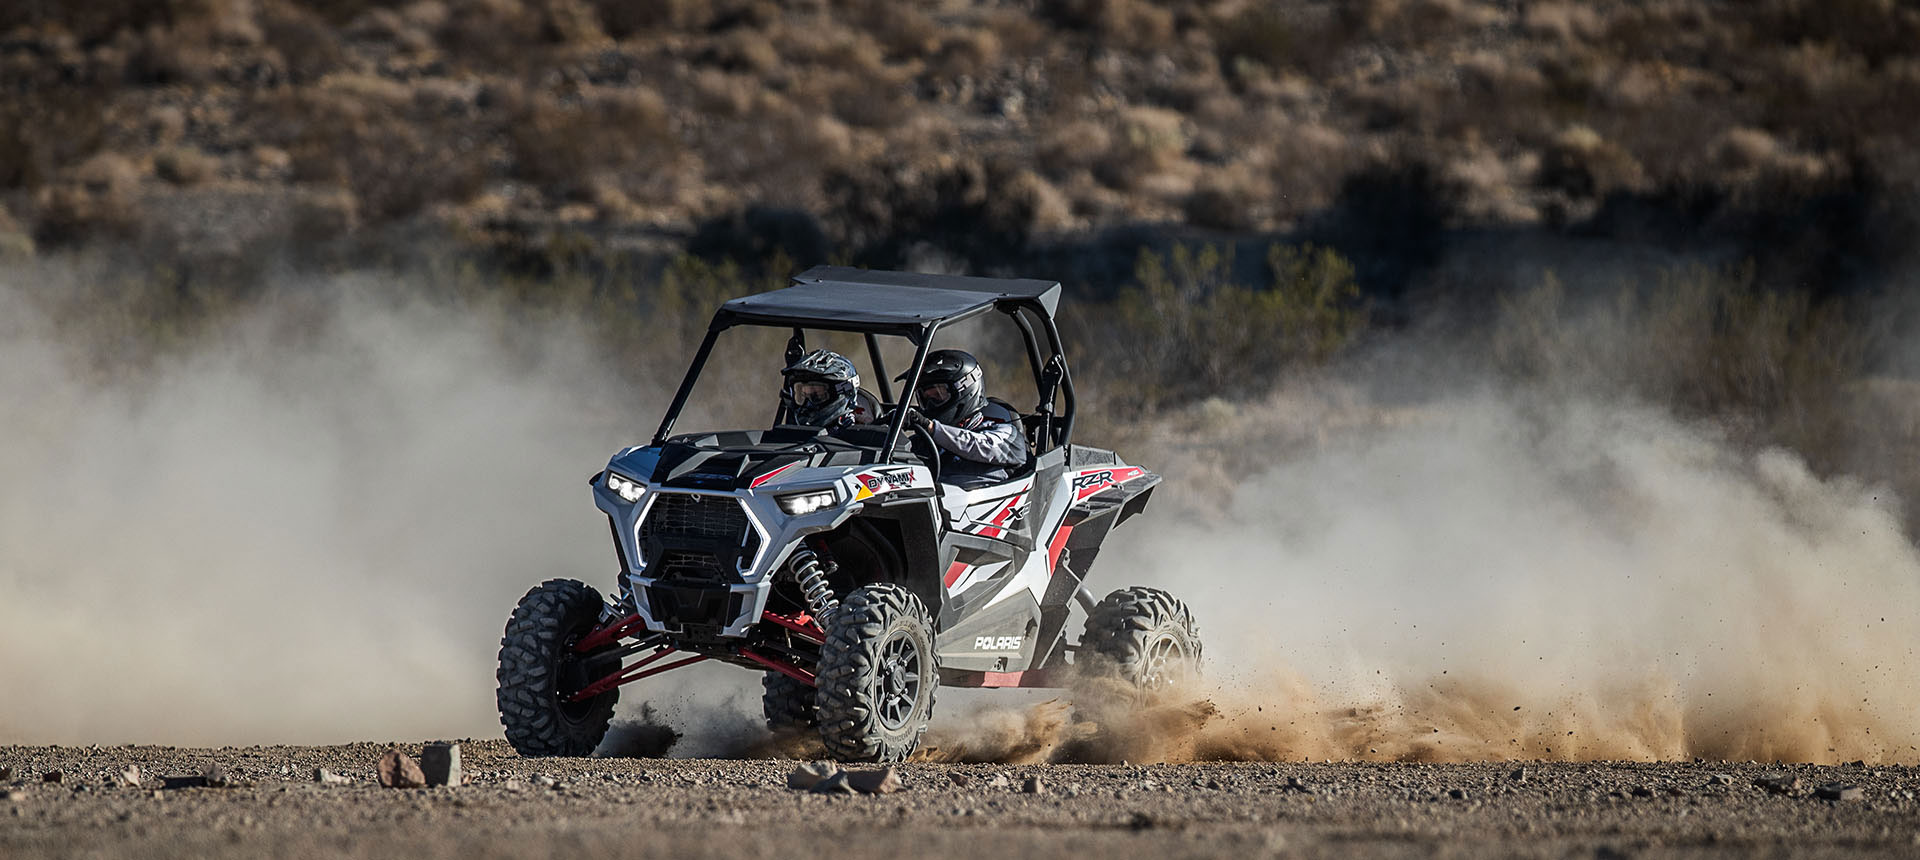 2019 Polaris RZR XP 1000 in Rapid City, South Dakota - Photo 2